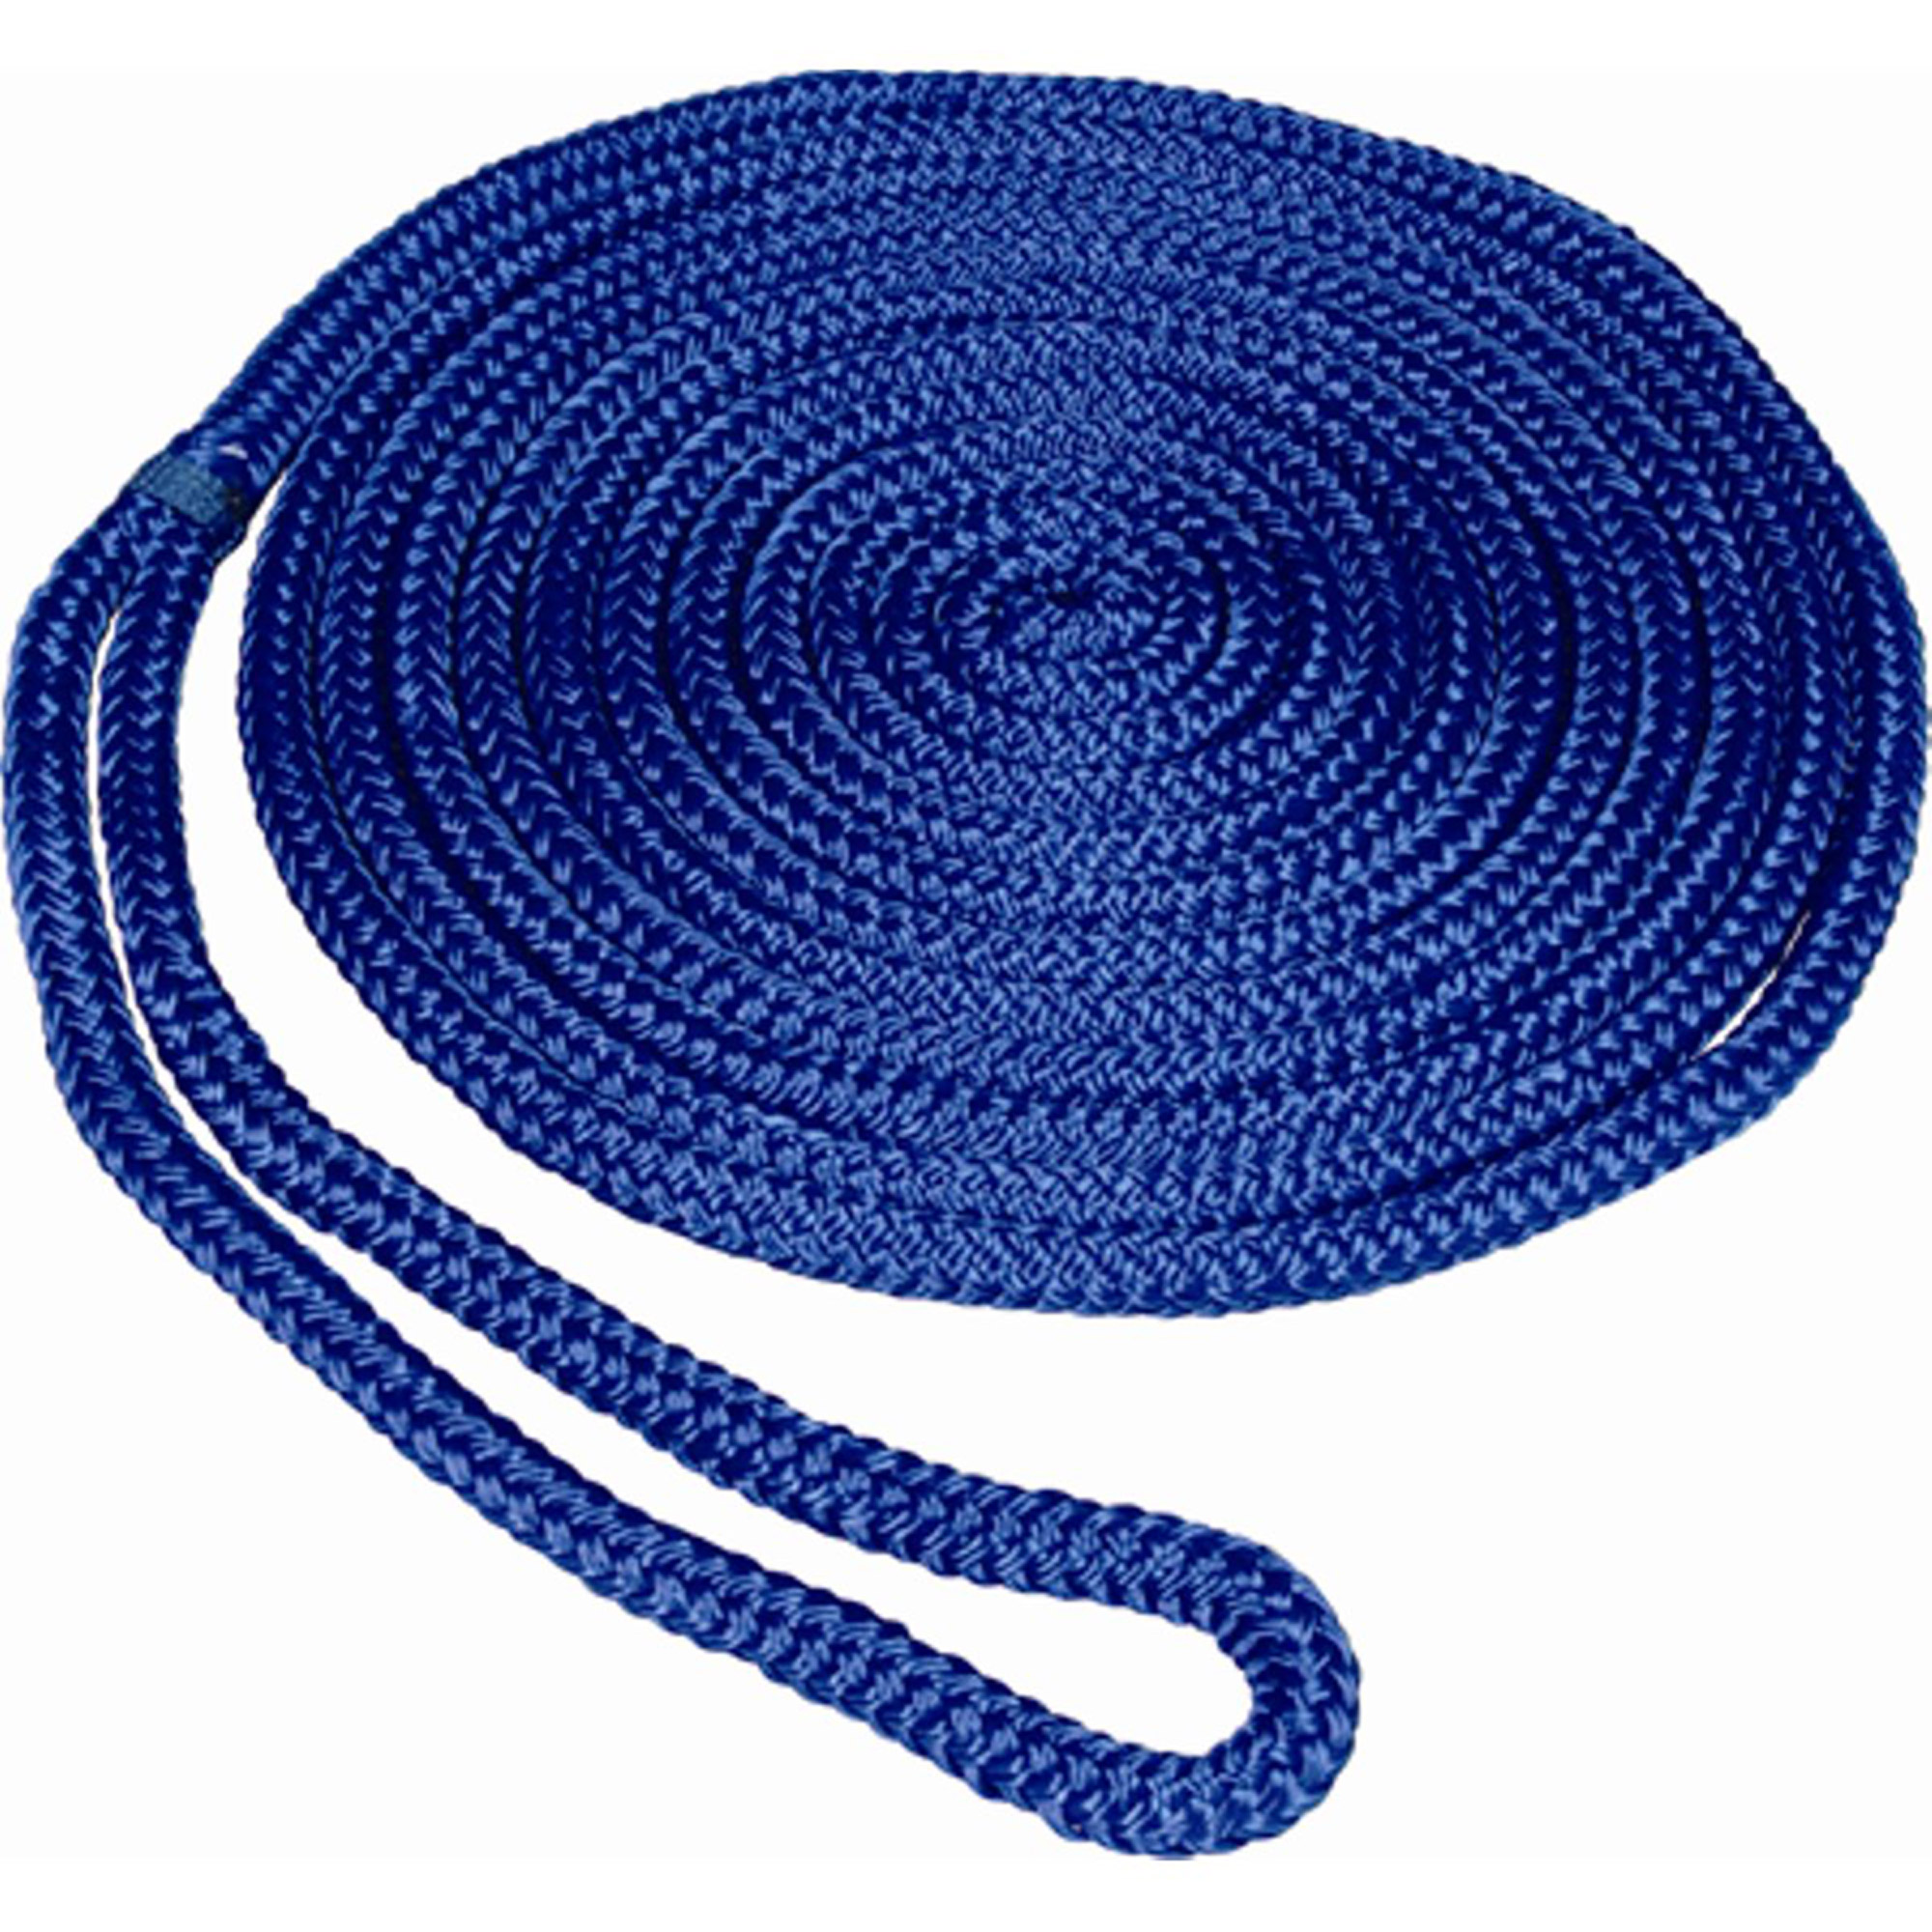 "Click here to buy SeaSense Pre-Spliced Double Braid MFP Dock Line, 1 2"" x 25', 12"" Eye, Blue by Generic."